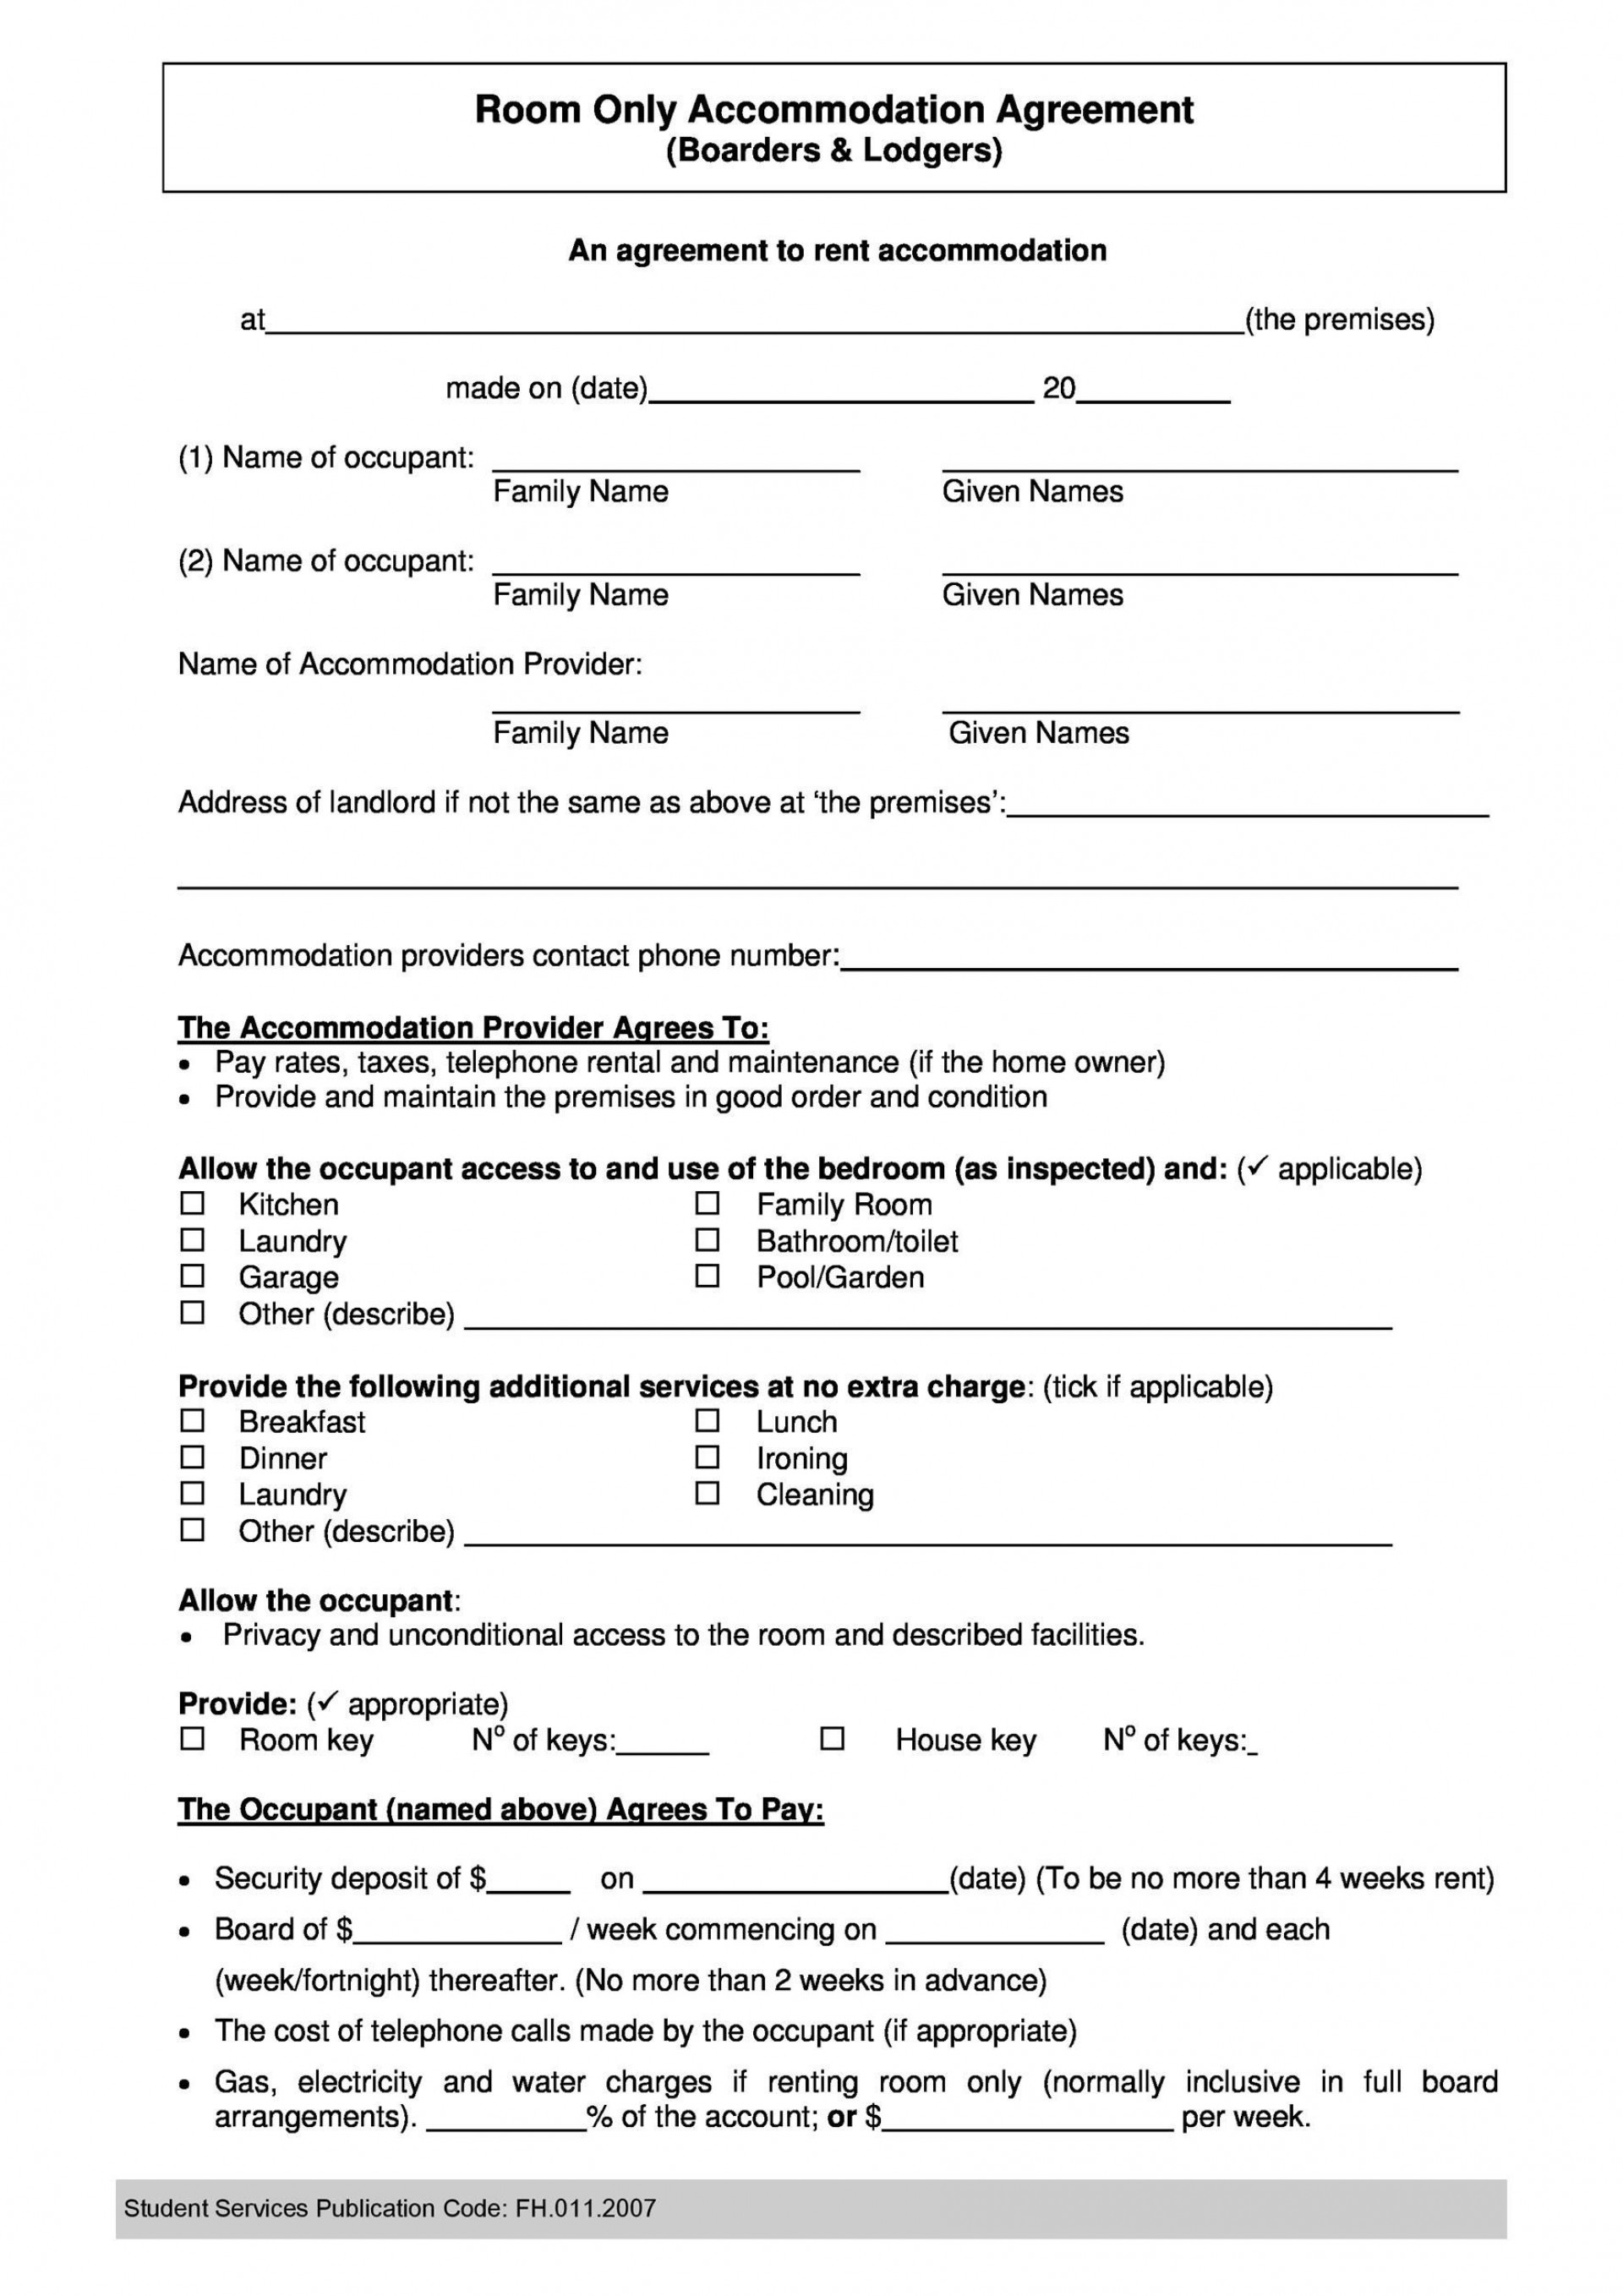 007 Fantastic Roommate Rental Agreement Template Idea  Form Free Contract1920